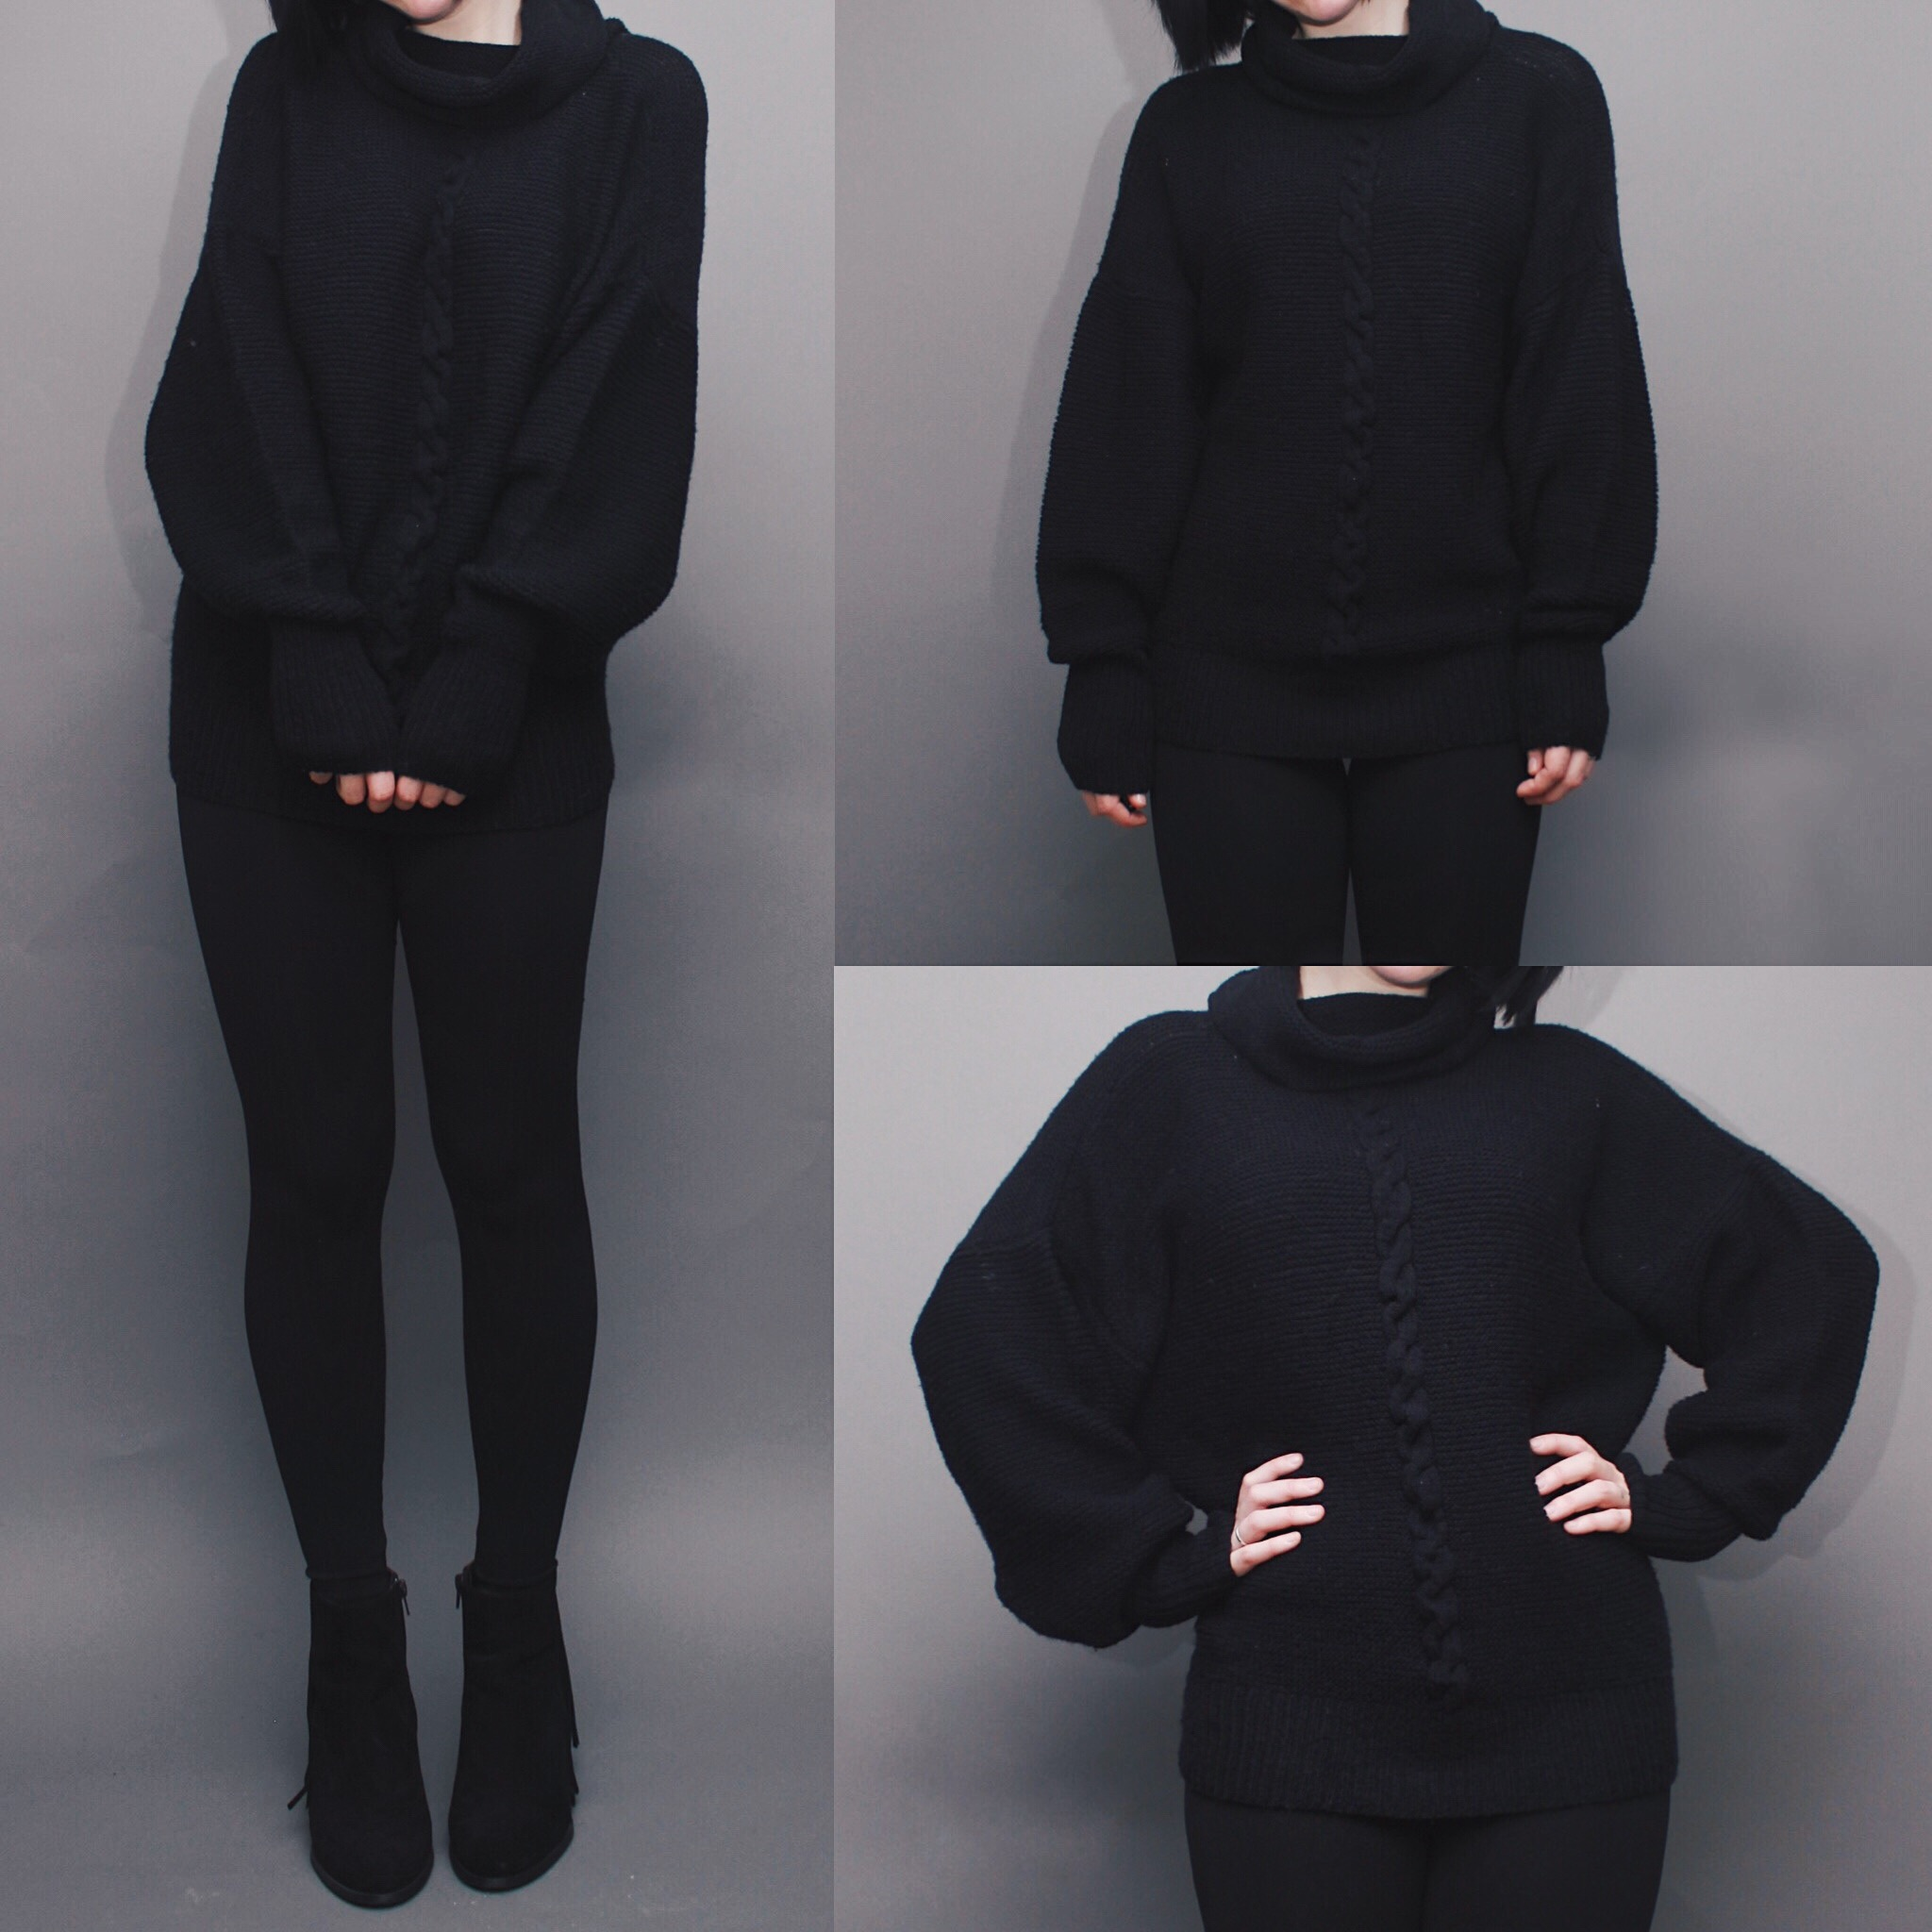 1891586e94 AVAILABLE - Vintage 80s Black Chunky Cable Knit Cowl Neck Batwing Sweater